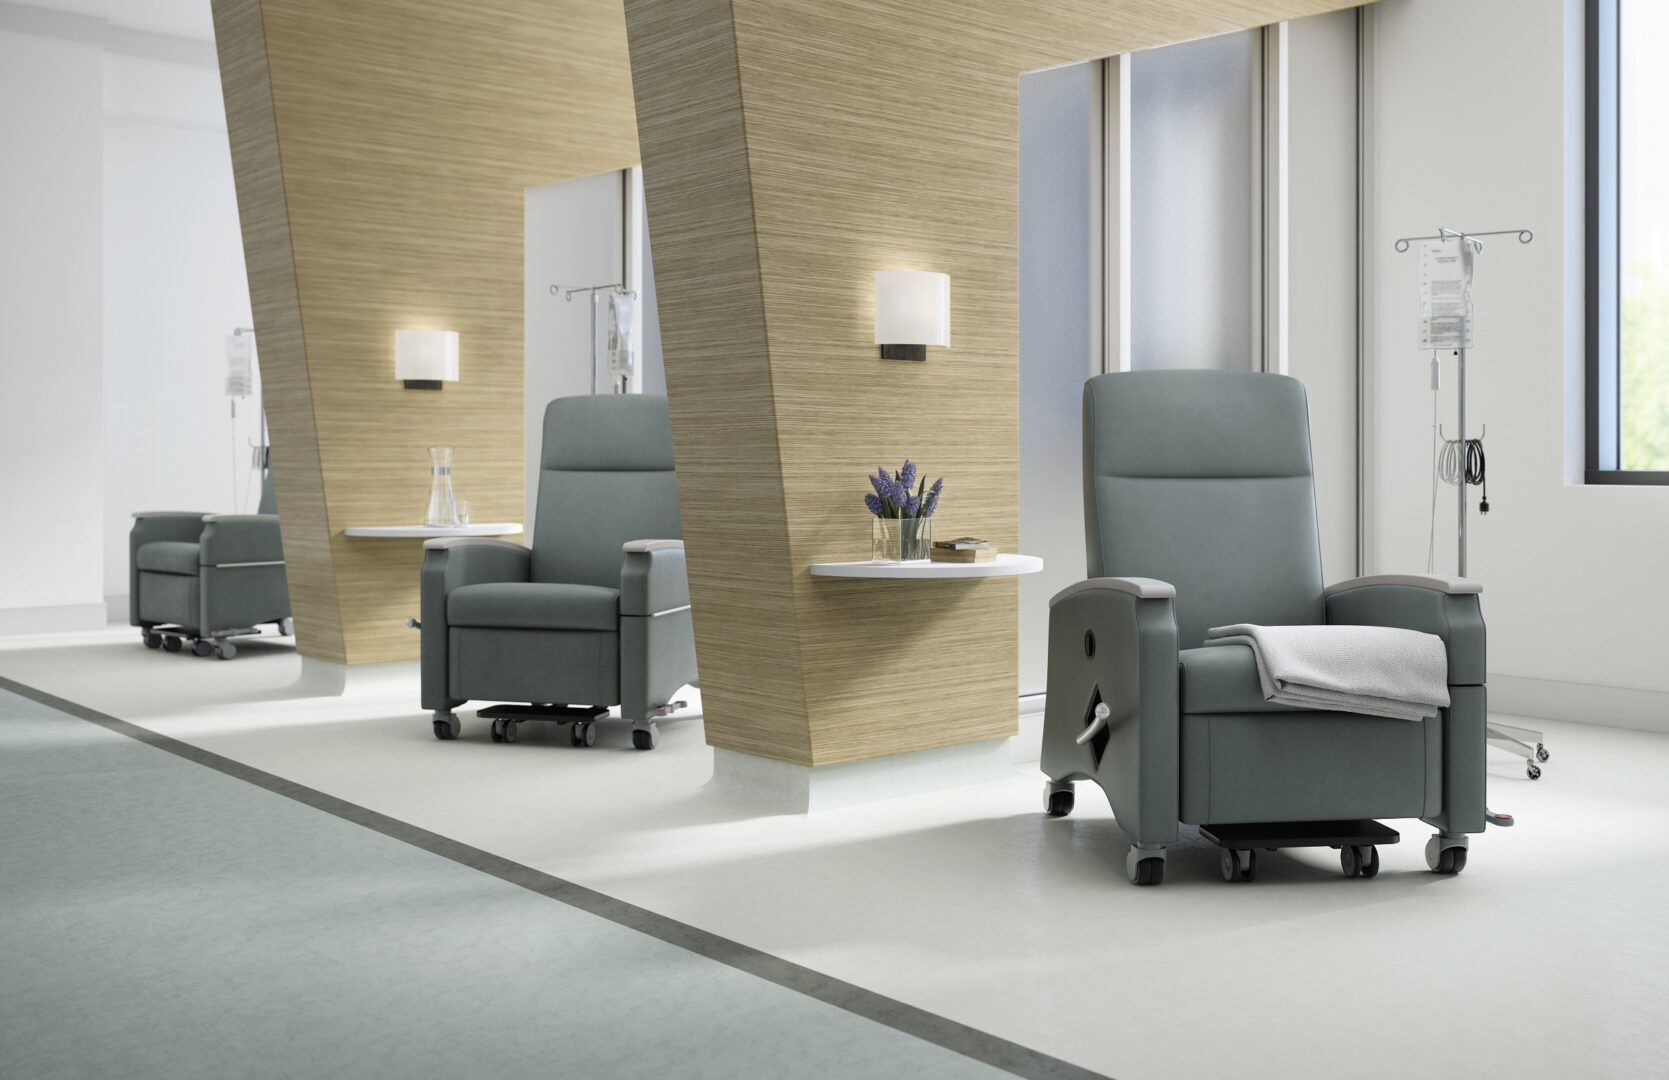 Some Things To Consider For Your Healthcare Office